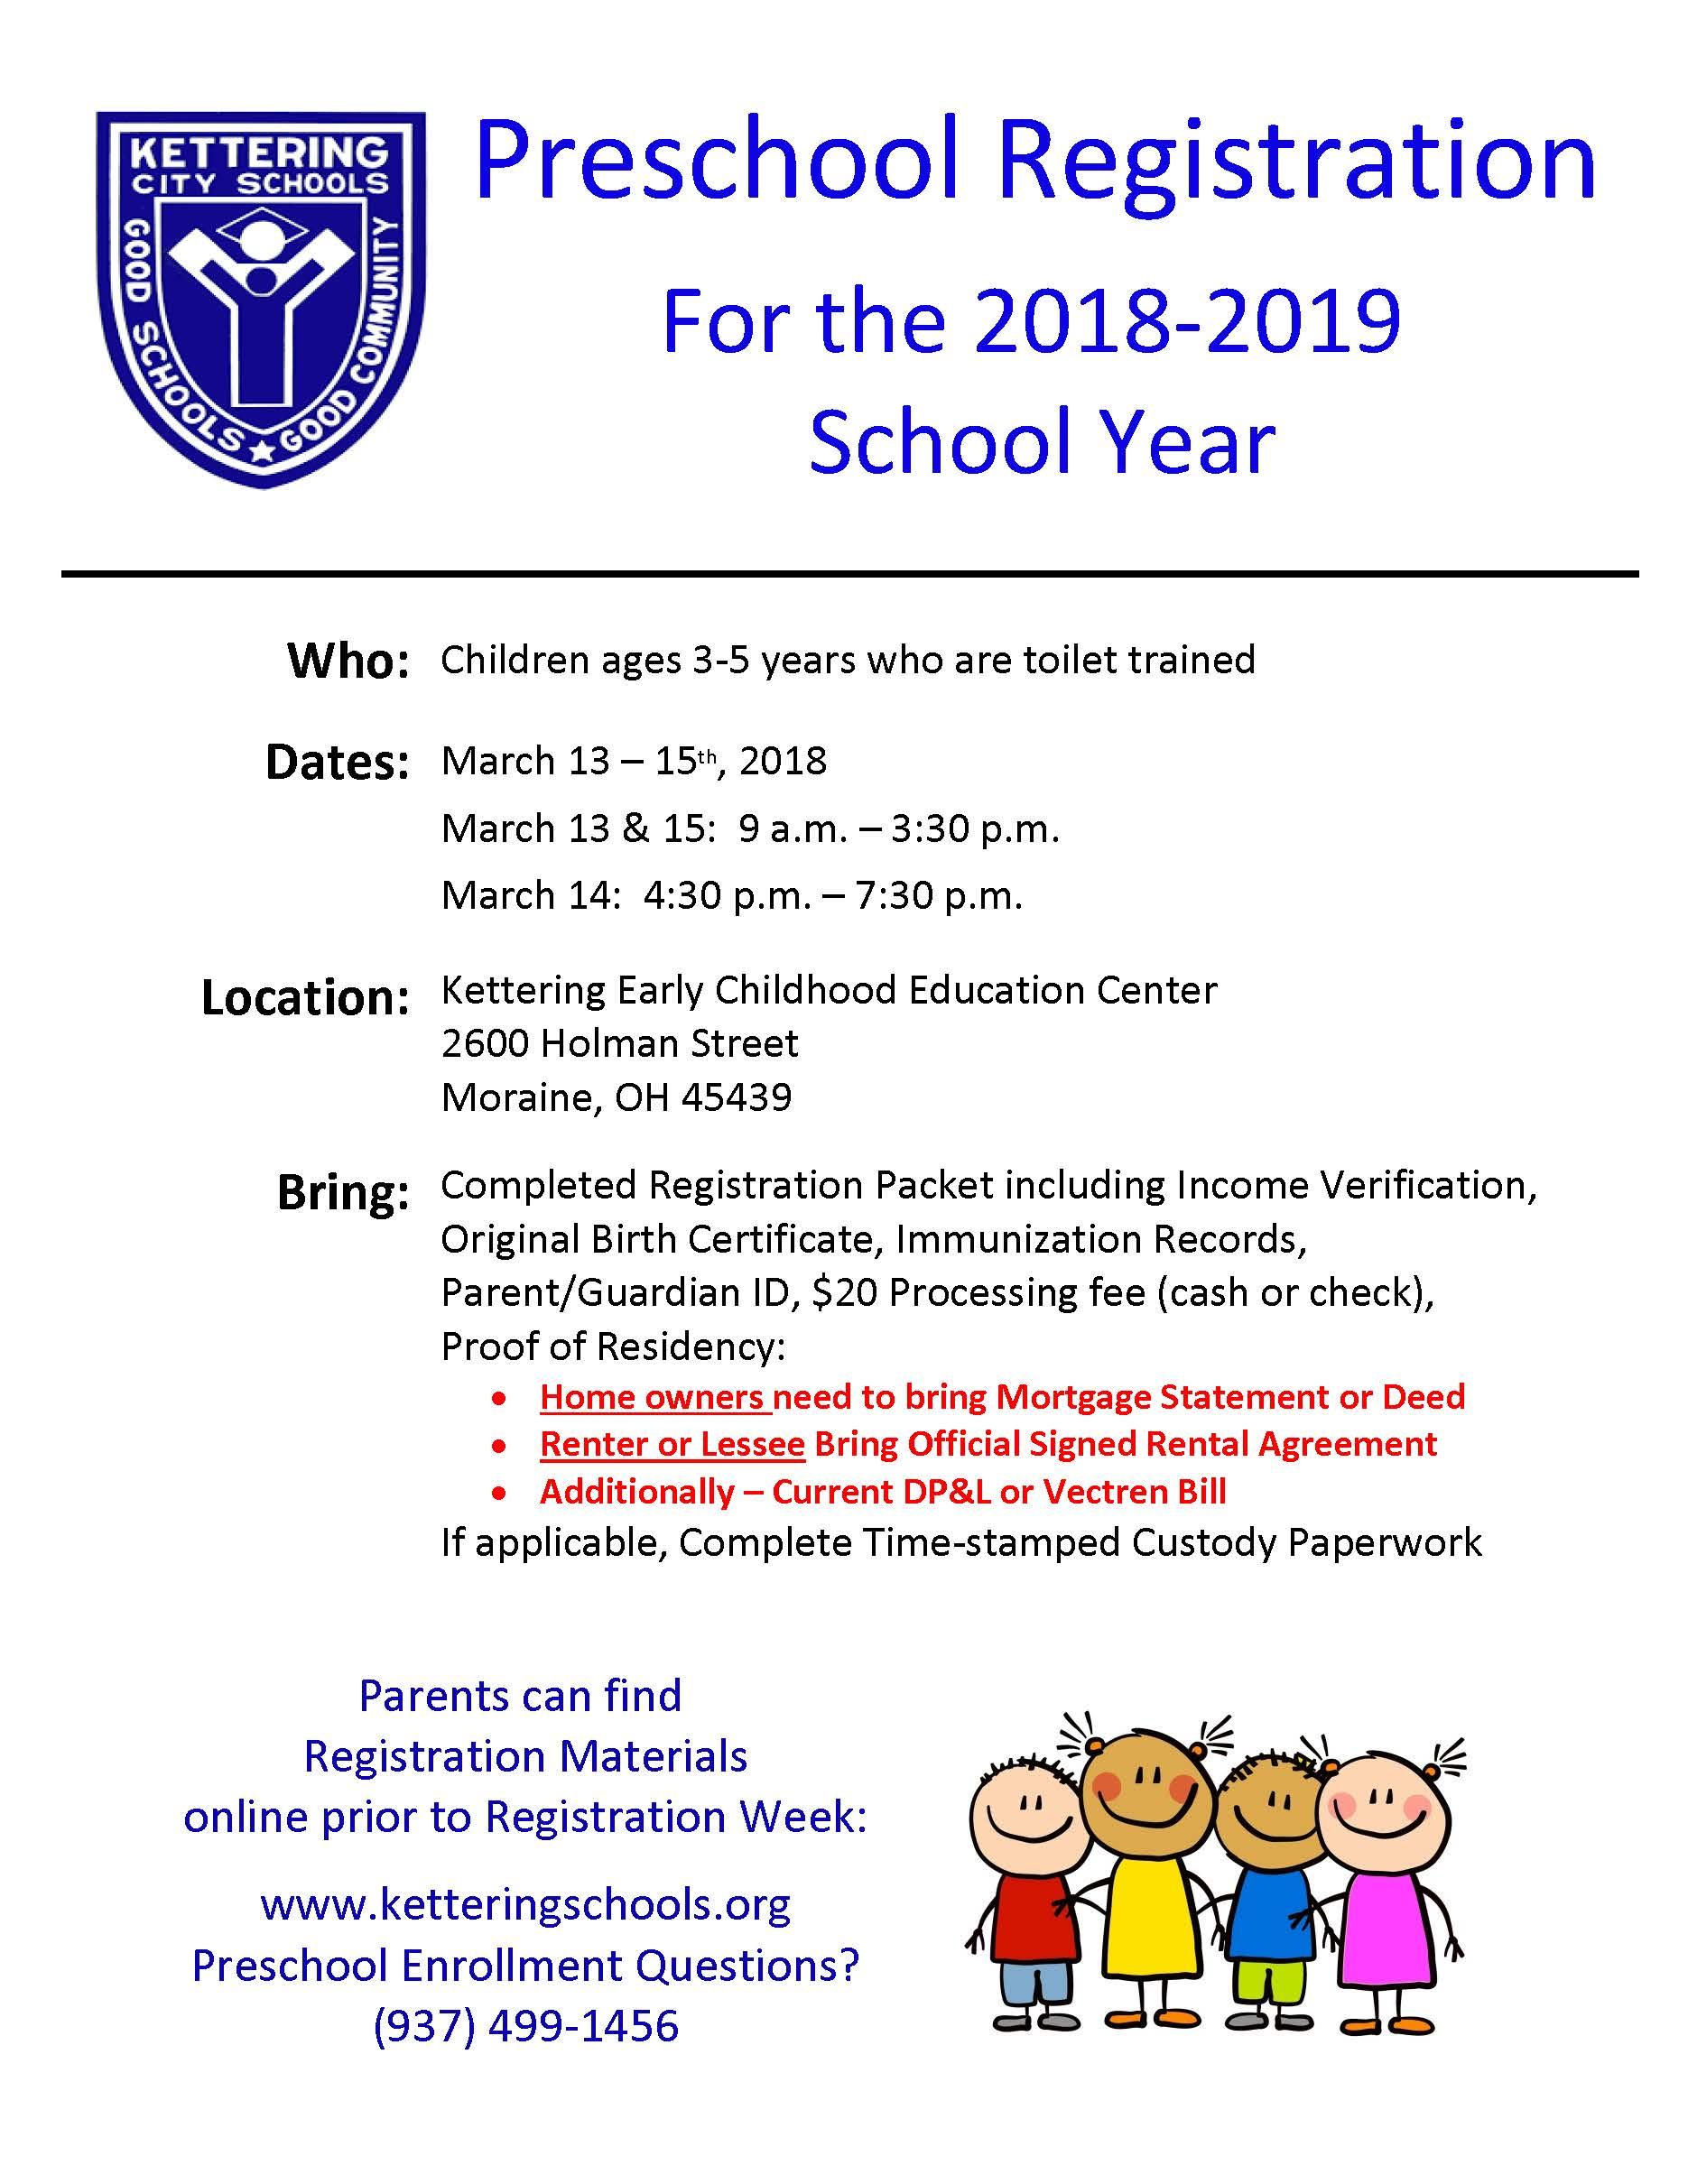 Preschool Registration For 2018 19 School Year Set For March 13 15 - Map-kettering-k12-oh-us